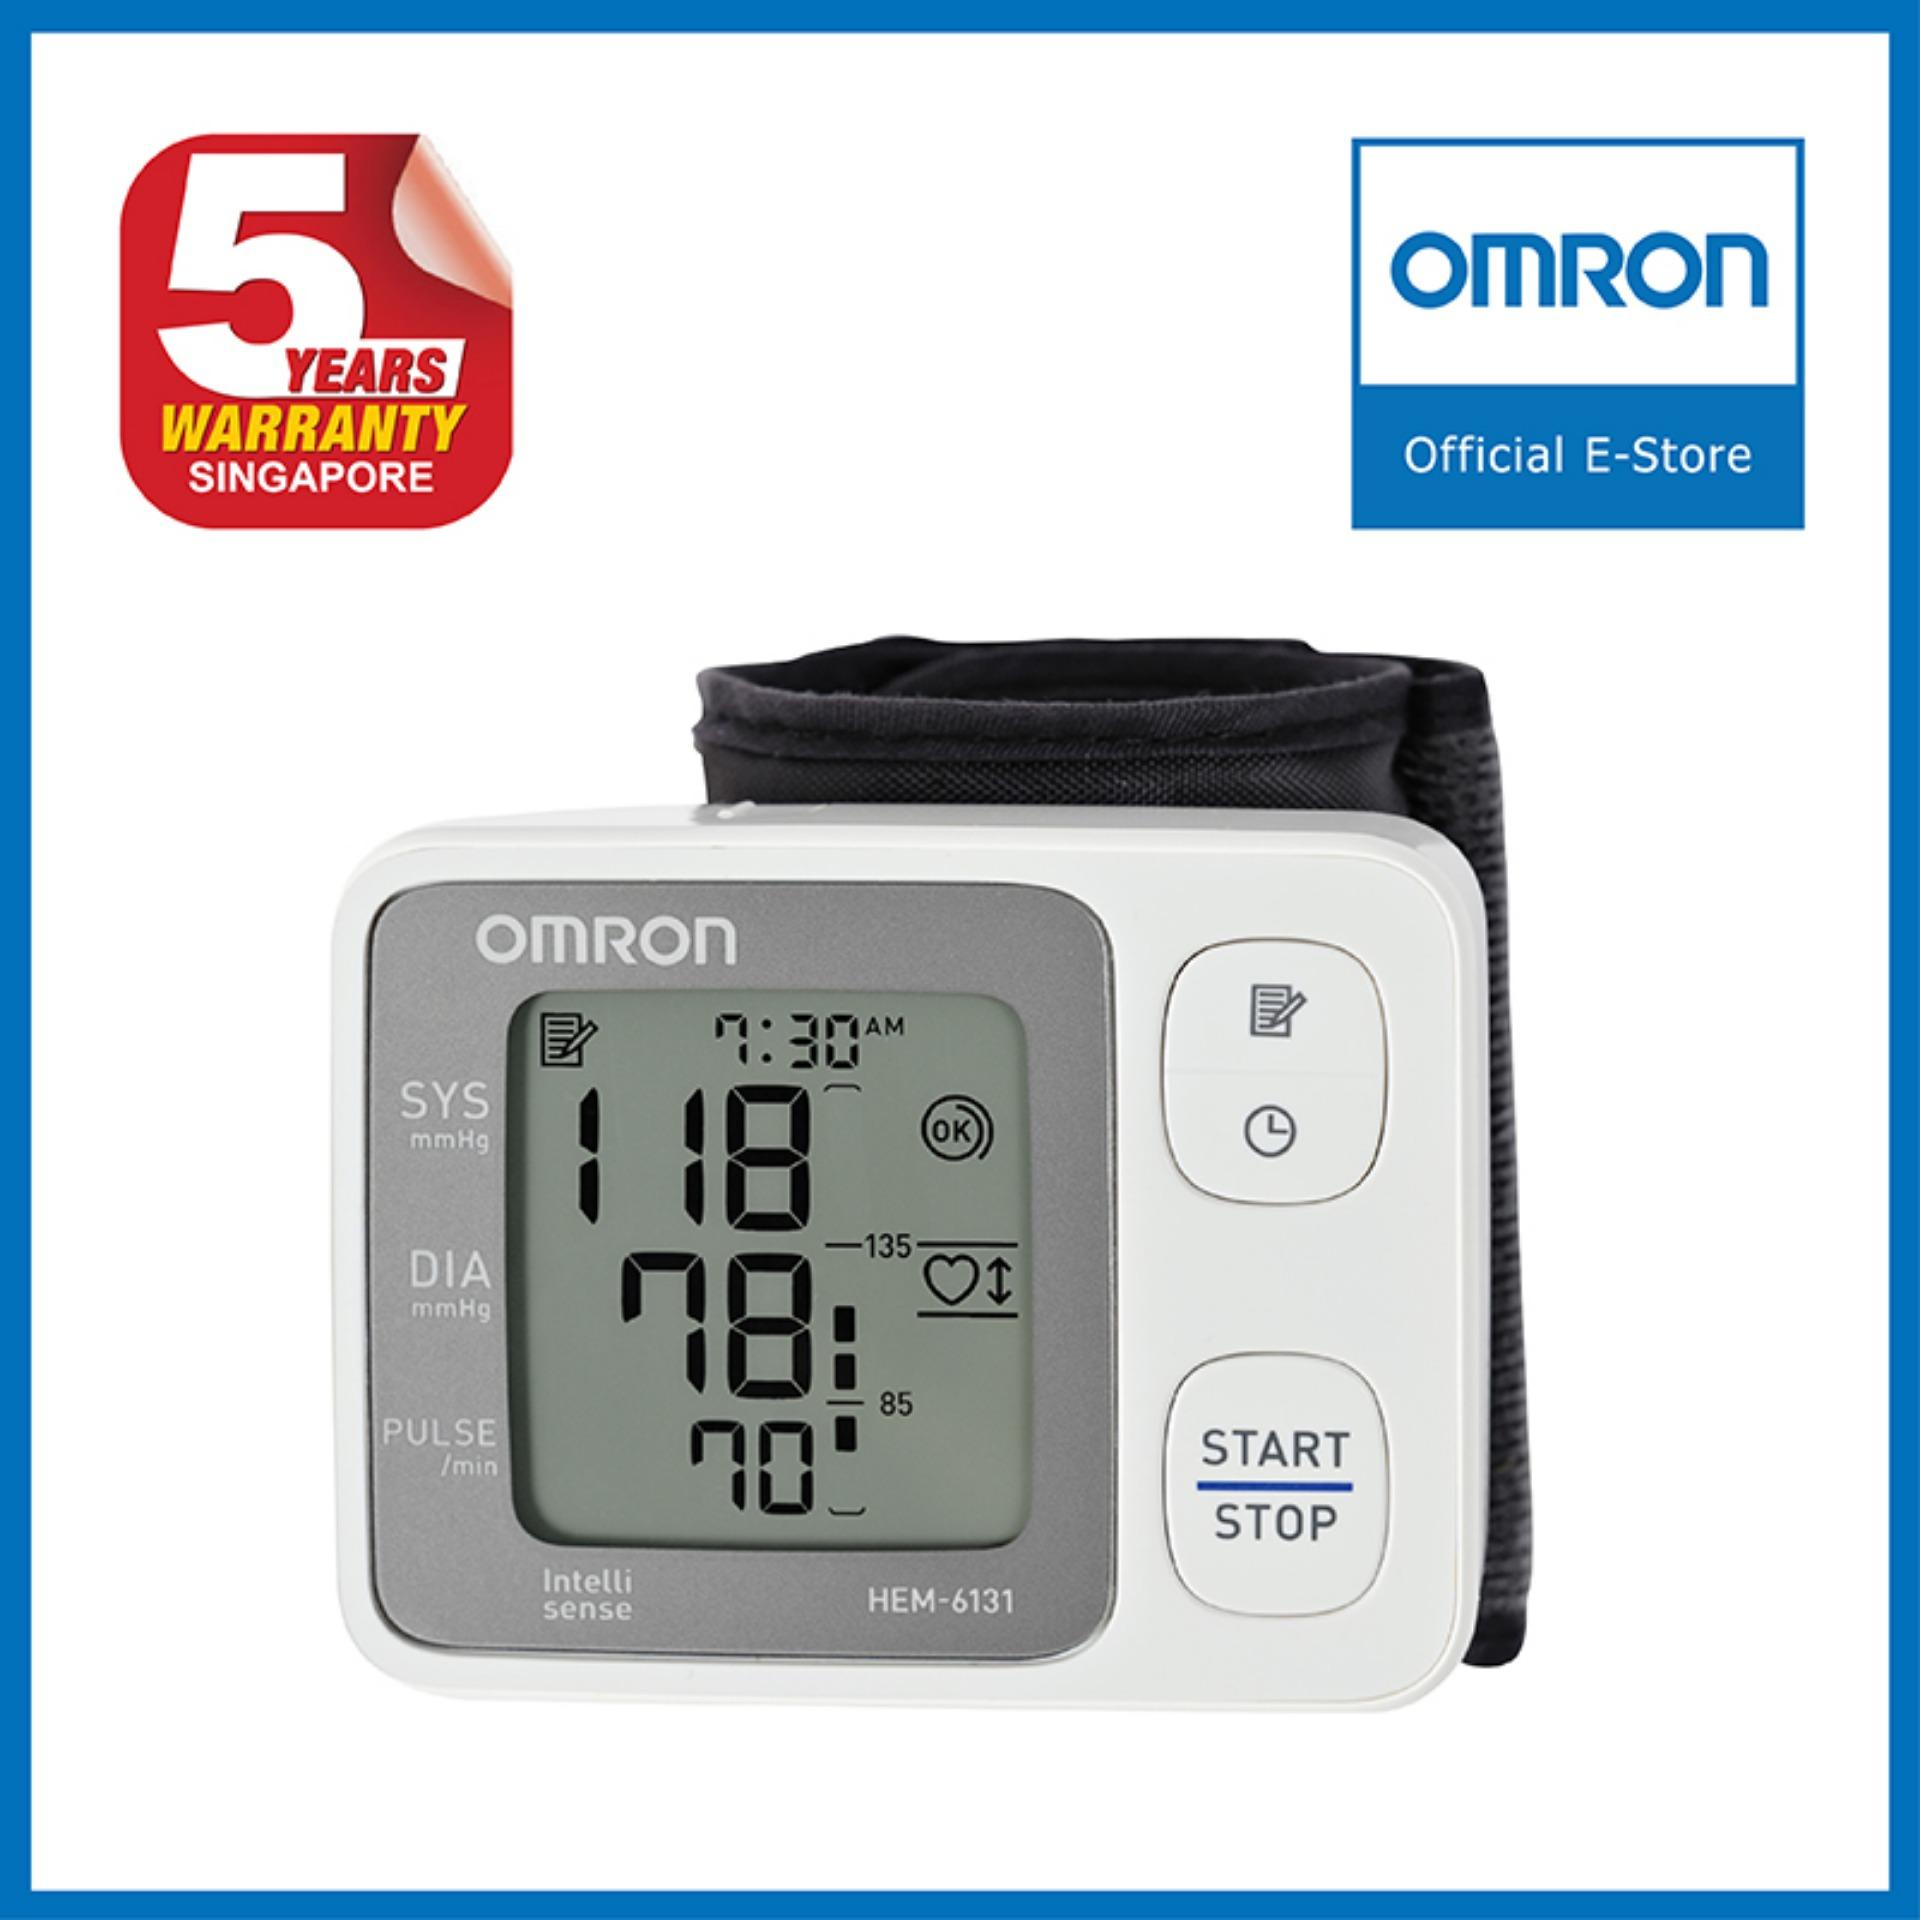 Compare Price Omron Wrist Blood Pressure Monitor Hem 6131 On Singapore